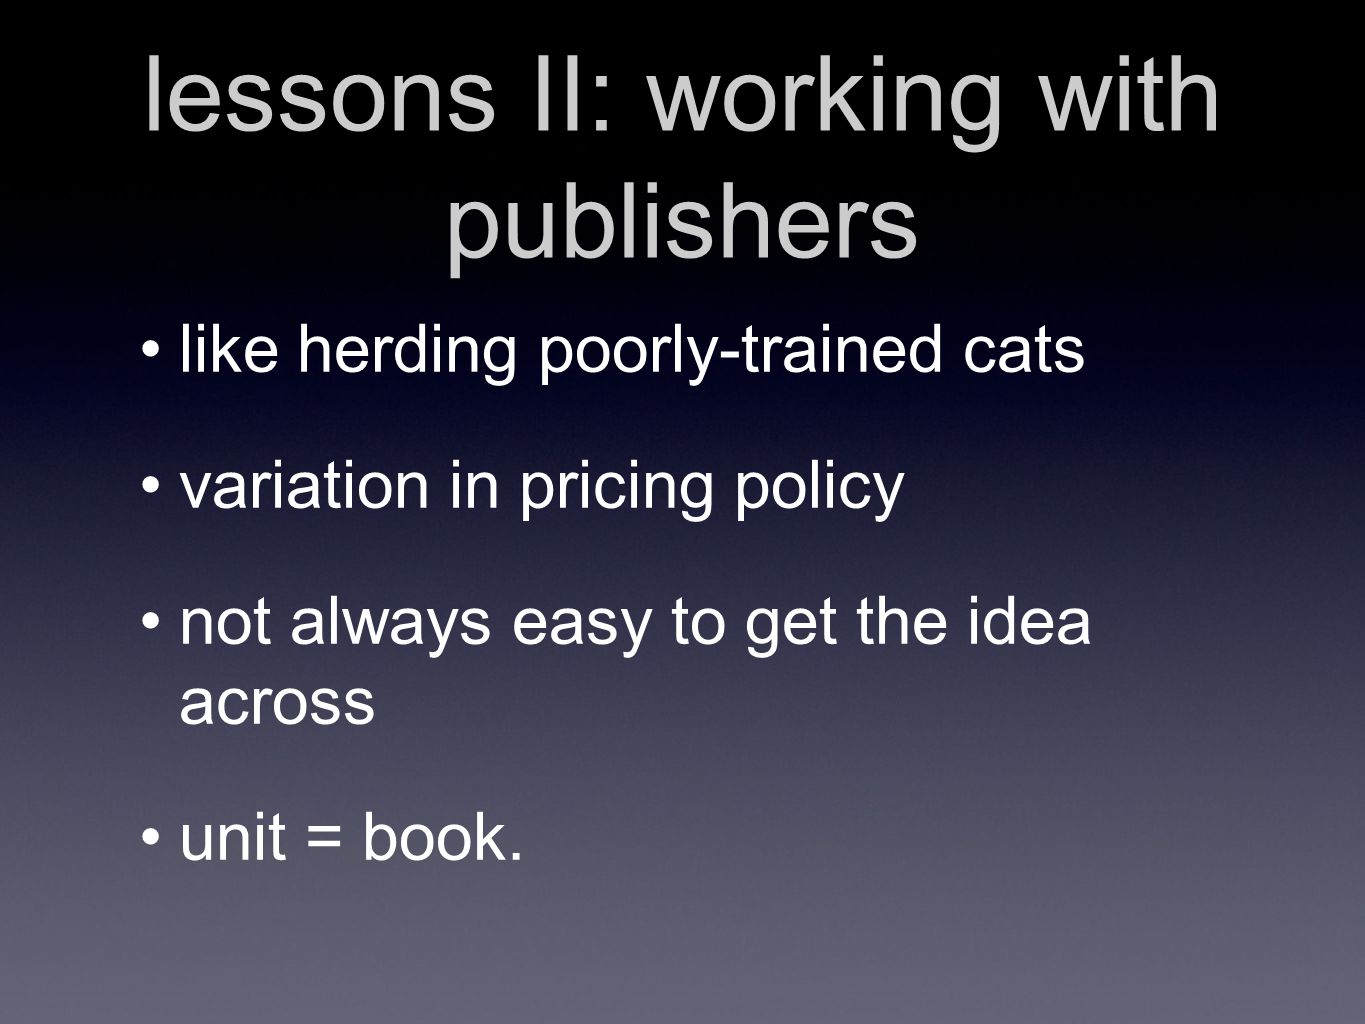 lessons II: working with publishers like herding poorly-trained cats variation in pricing policy not always easy to get the idea across unit = book.